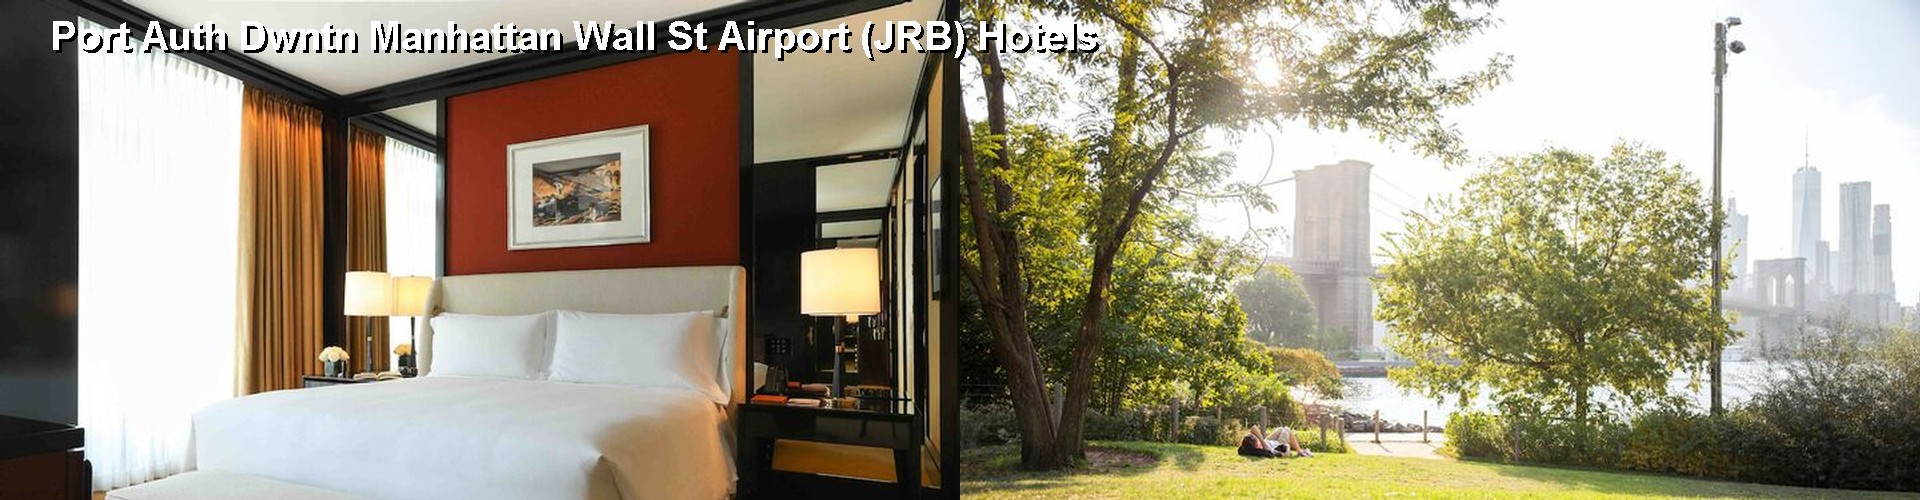 5 Best Hotels near Port Auth Dwntn Manhattan Wall St Airport (JRB)